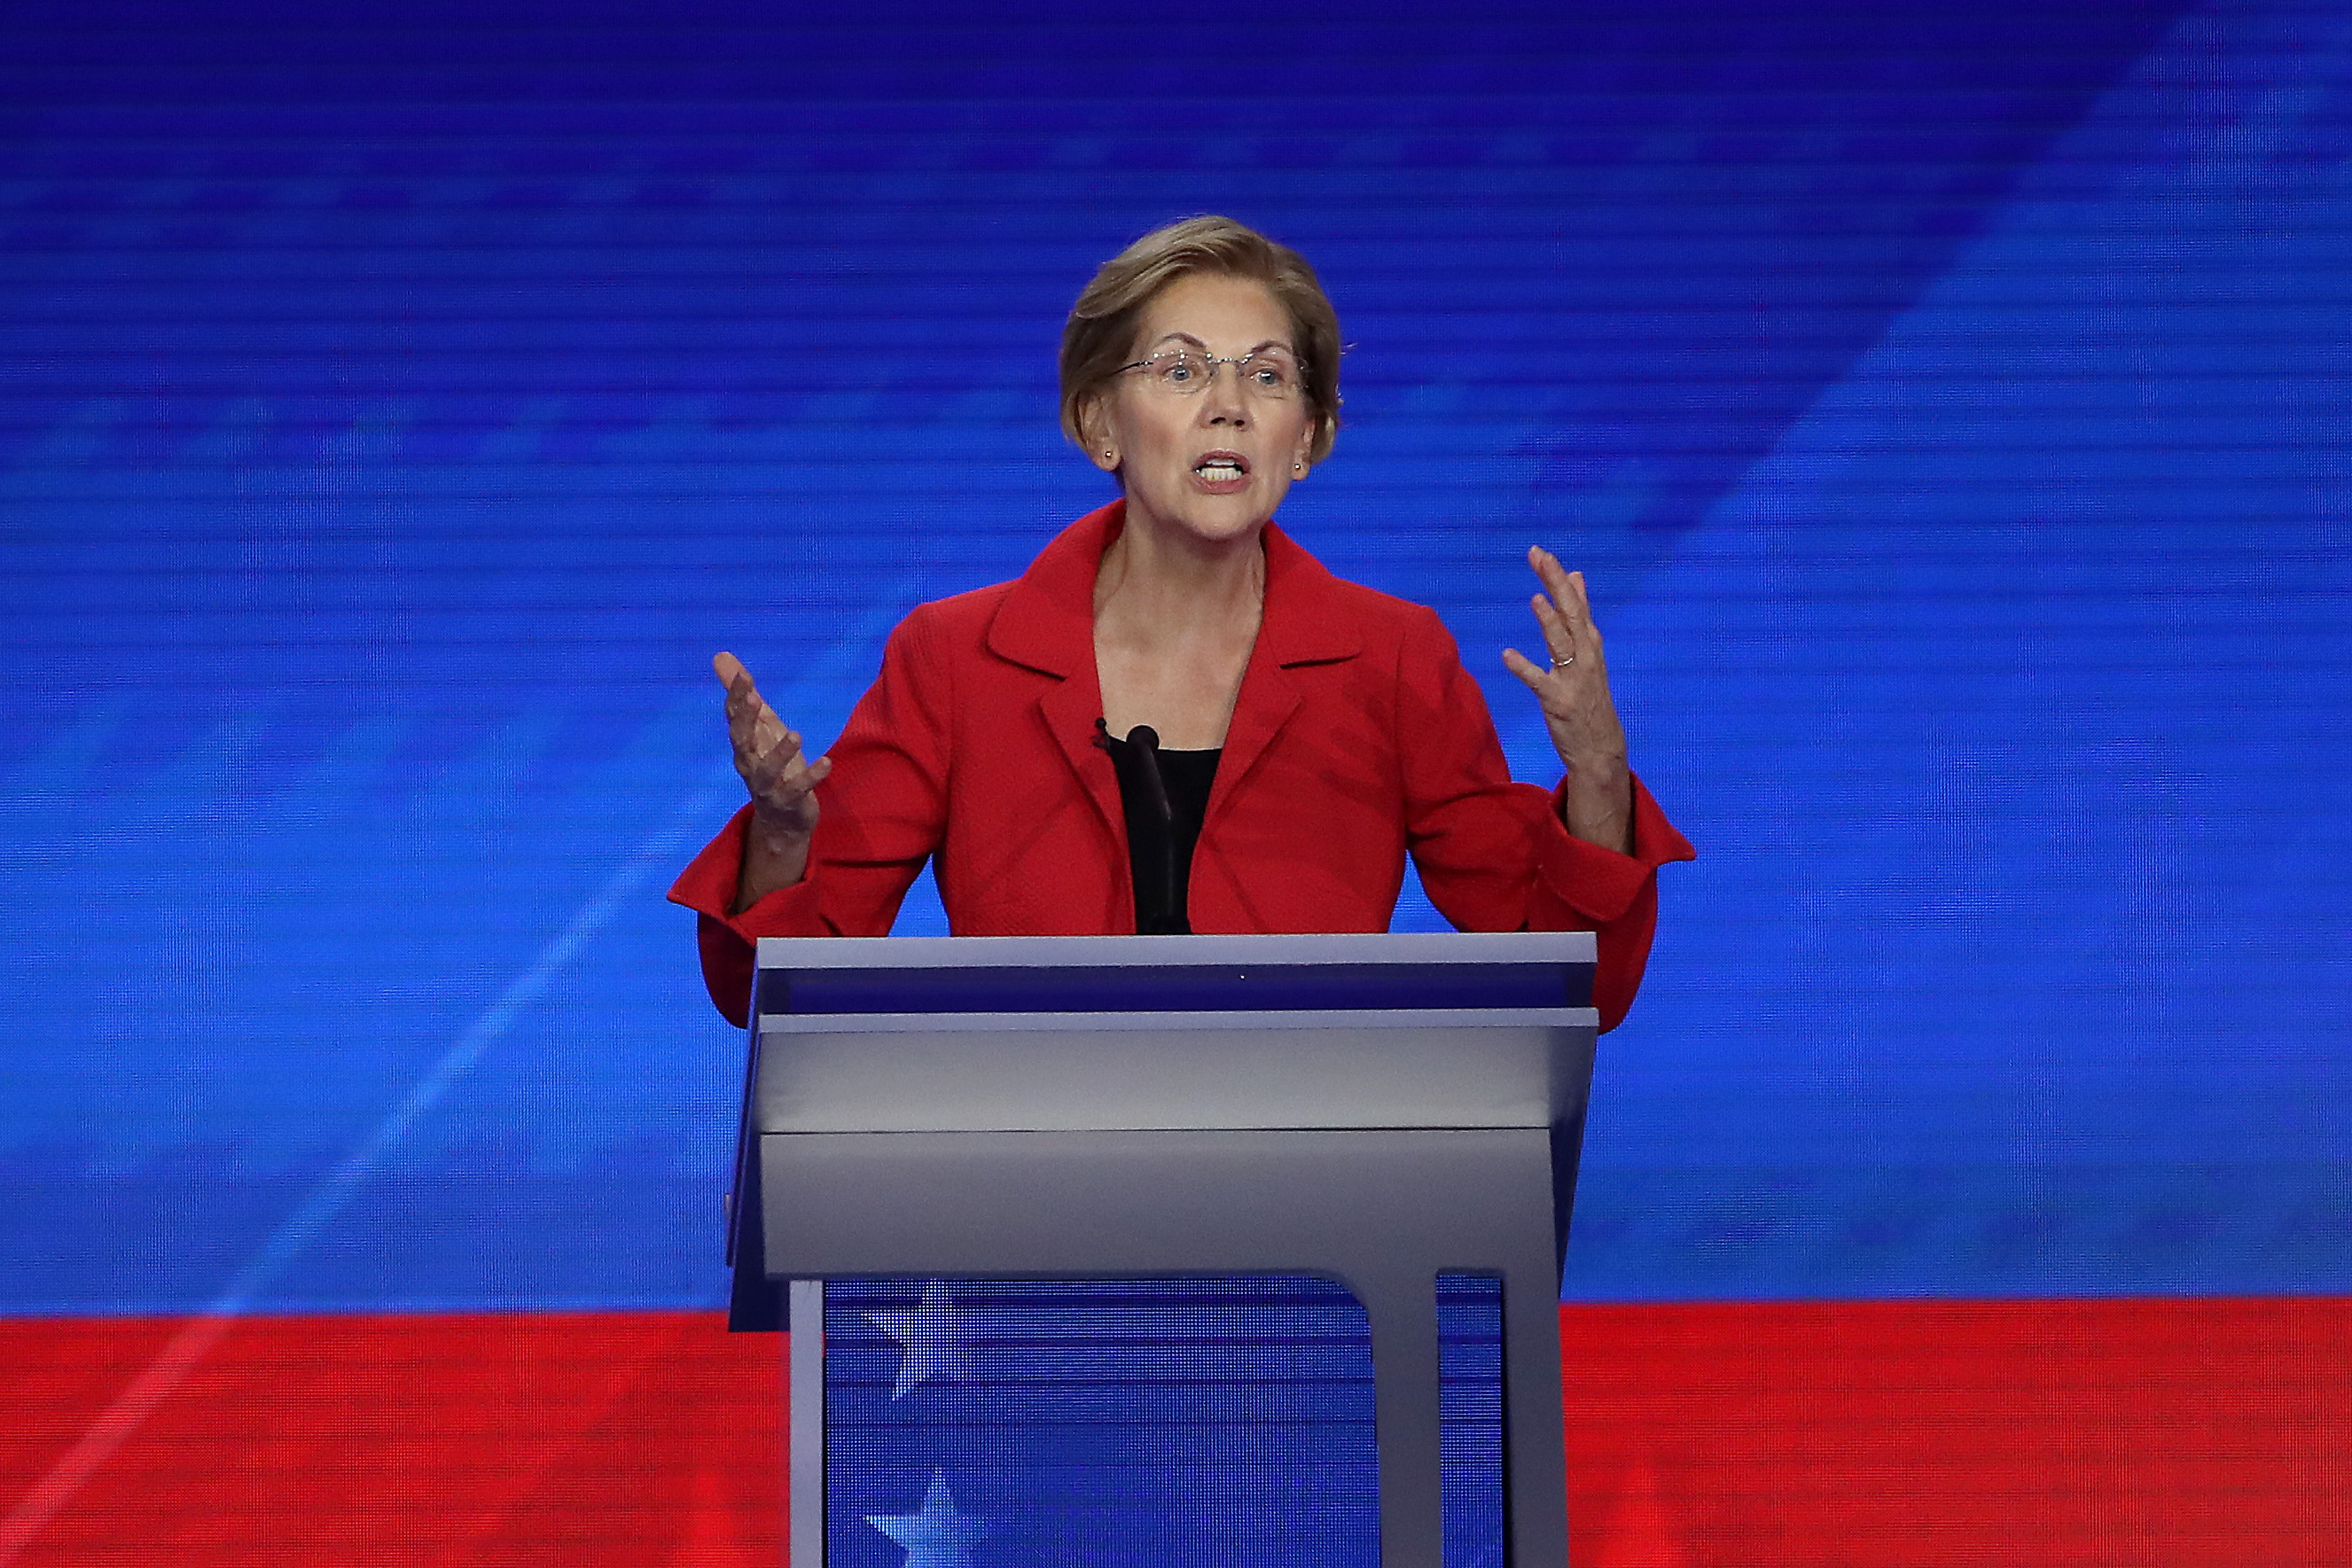 Democratic presidential candidate Sen. Elizabeth Warren (D-MA) speaks during the Democratic Presidential Debate at Texas Southern University's Health and PE Center on September 12, 2019 in Houston, Texas. (Win McNamee/Getty Images)